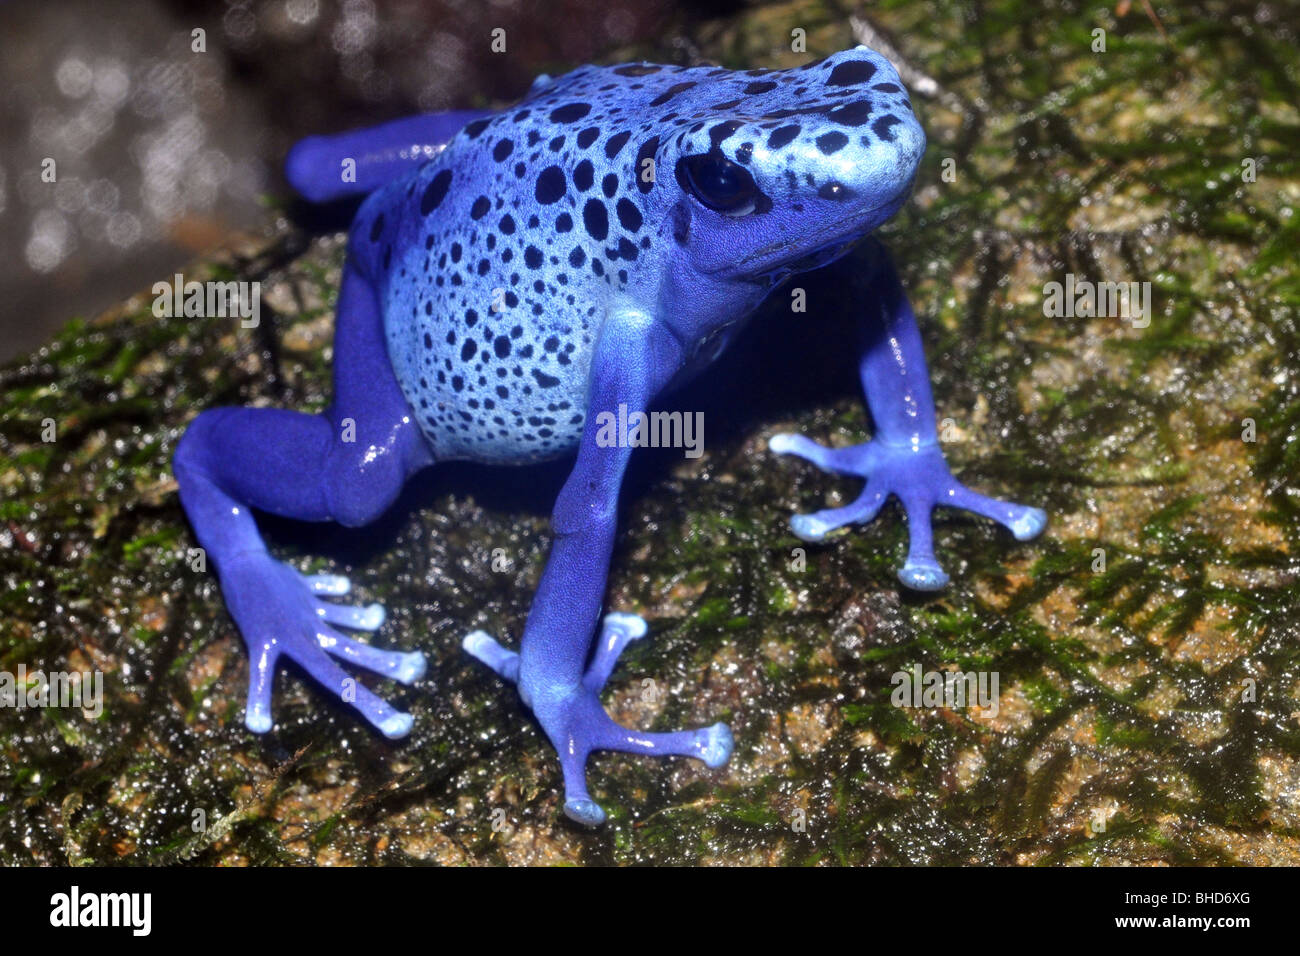 Suriname Poison Arrow Frog ( Dendrobates azureus). Typically a ground frog, found among moss covered trees and rocks. Stock Photo